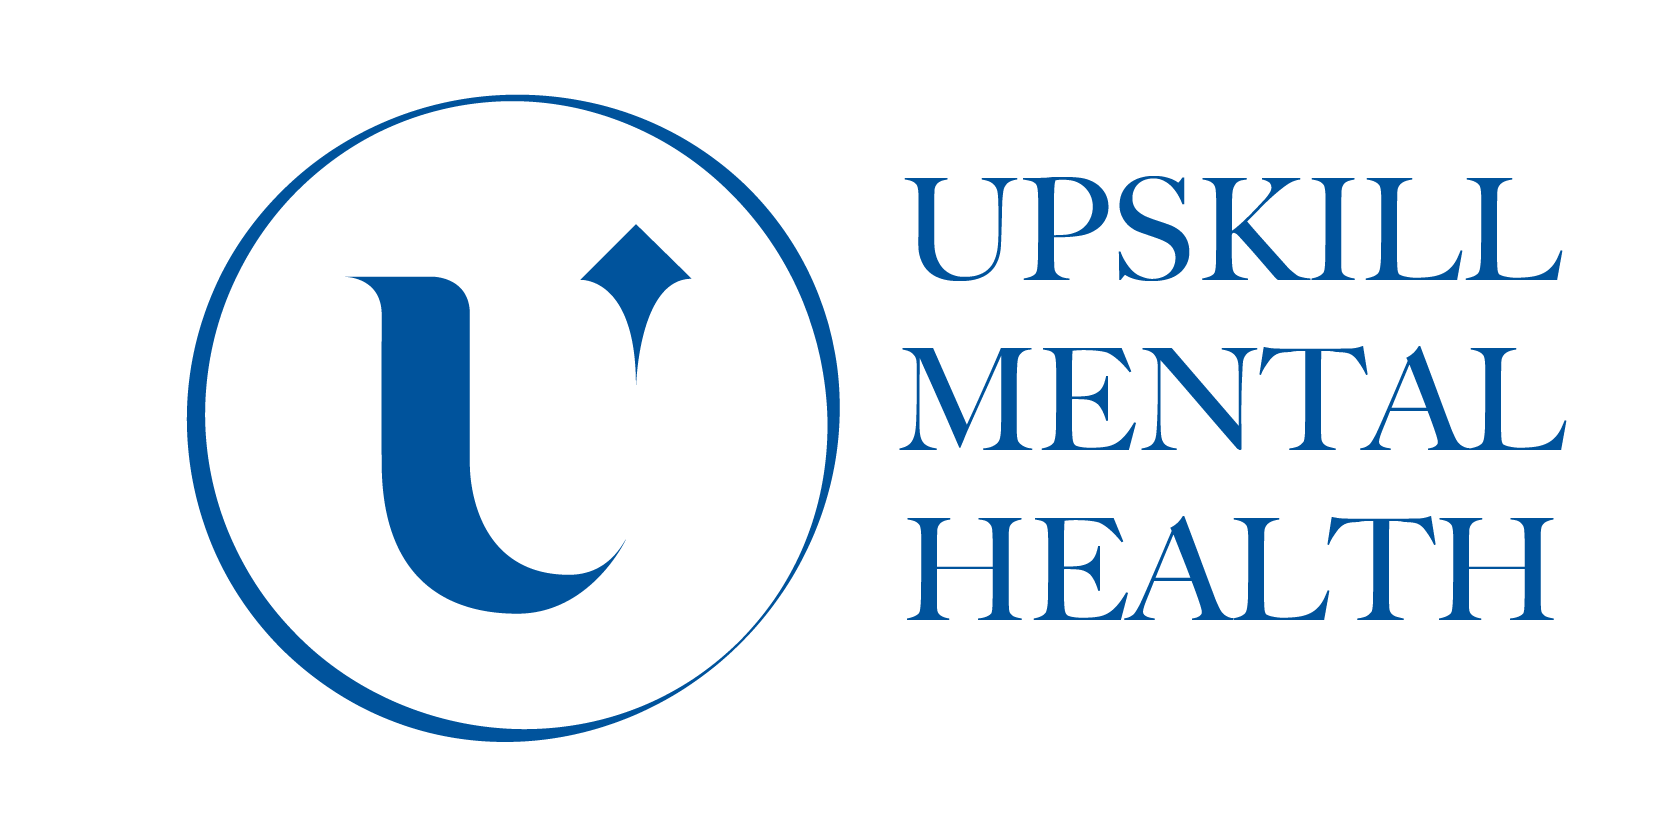 UPSKILL MENTAL HEALTH LOGO